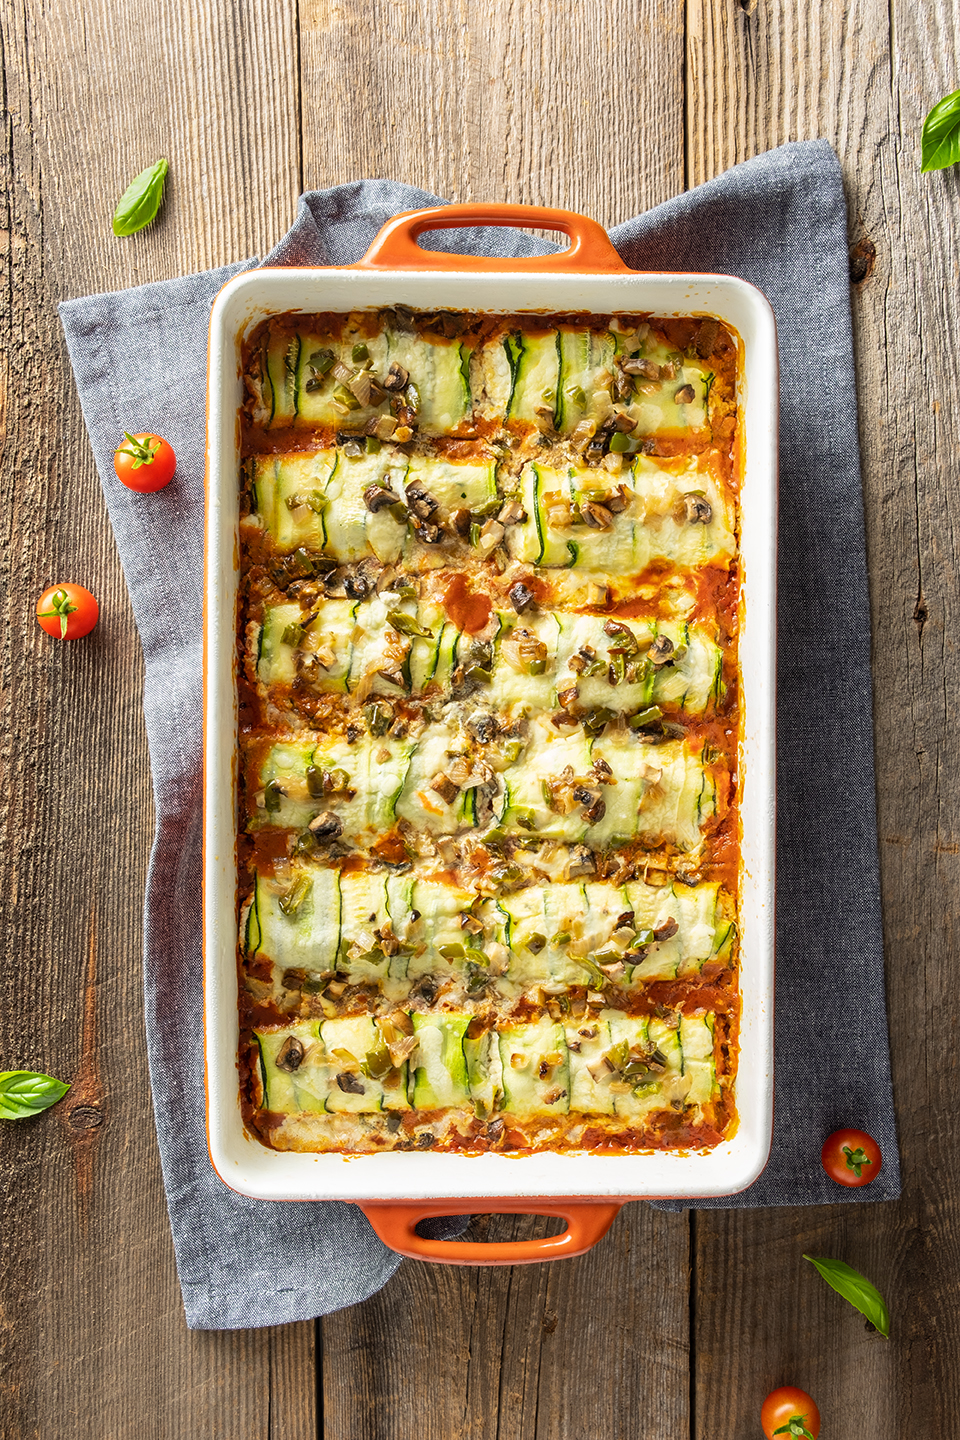 Low carb zucchini and ricotta cannelloni in a orange baking dish with a blue napkin.  Basil and cherry tomatoes on a rustic wooden background.